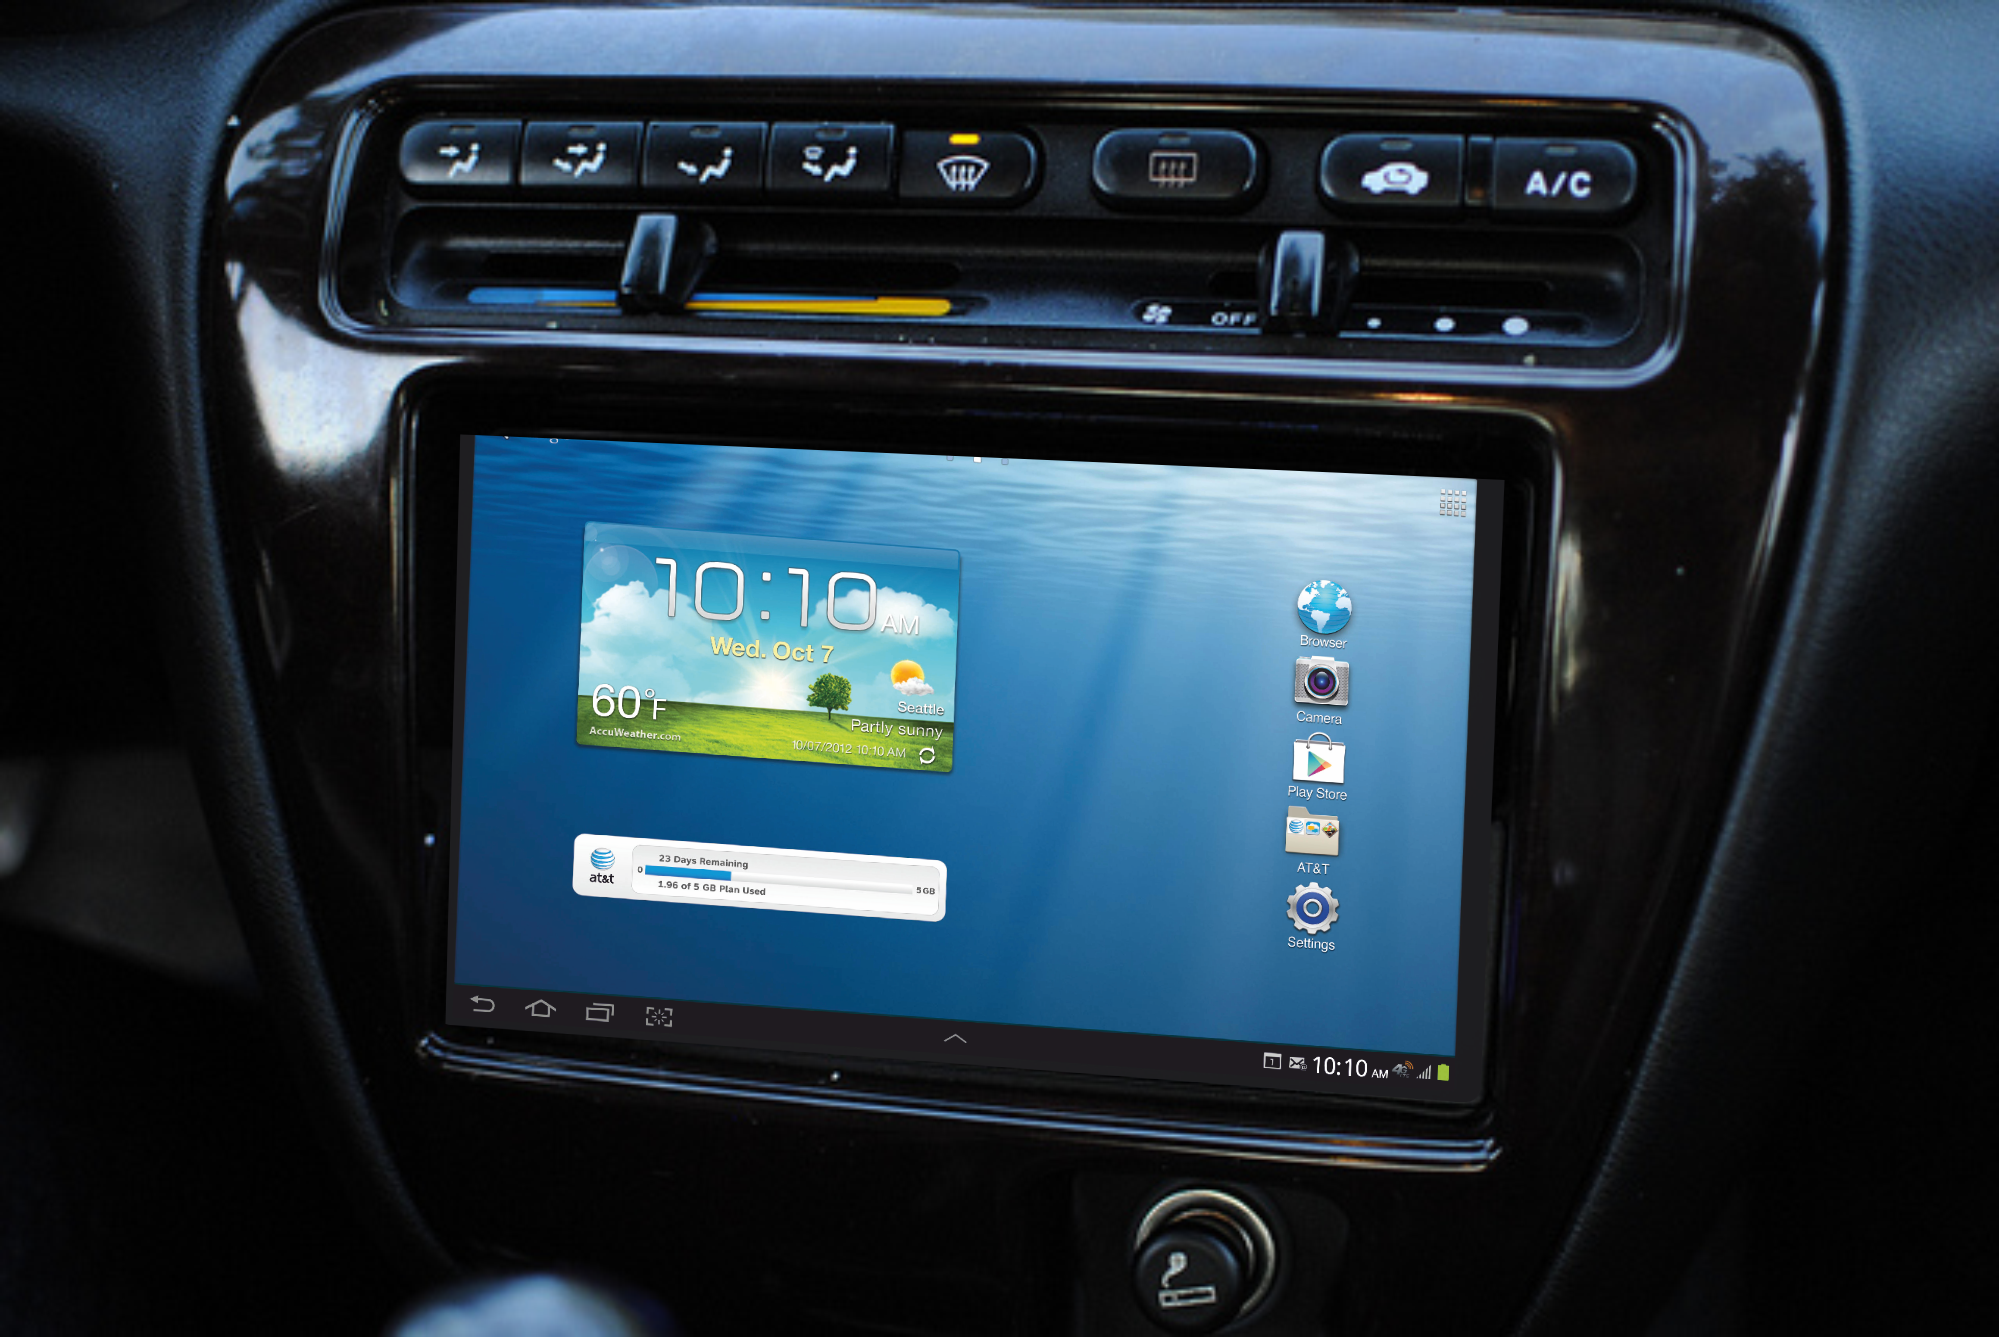 Who needs a car head unit when you have a tablet or mobile phone?